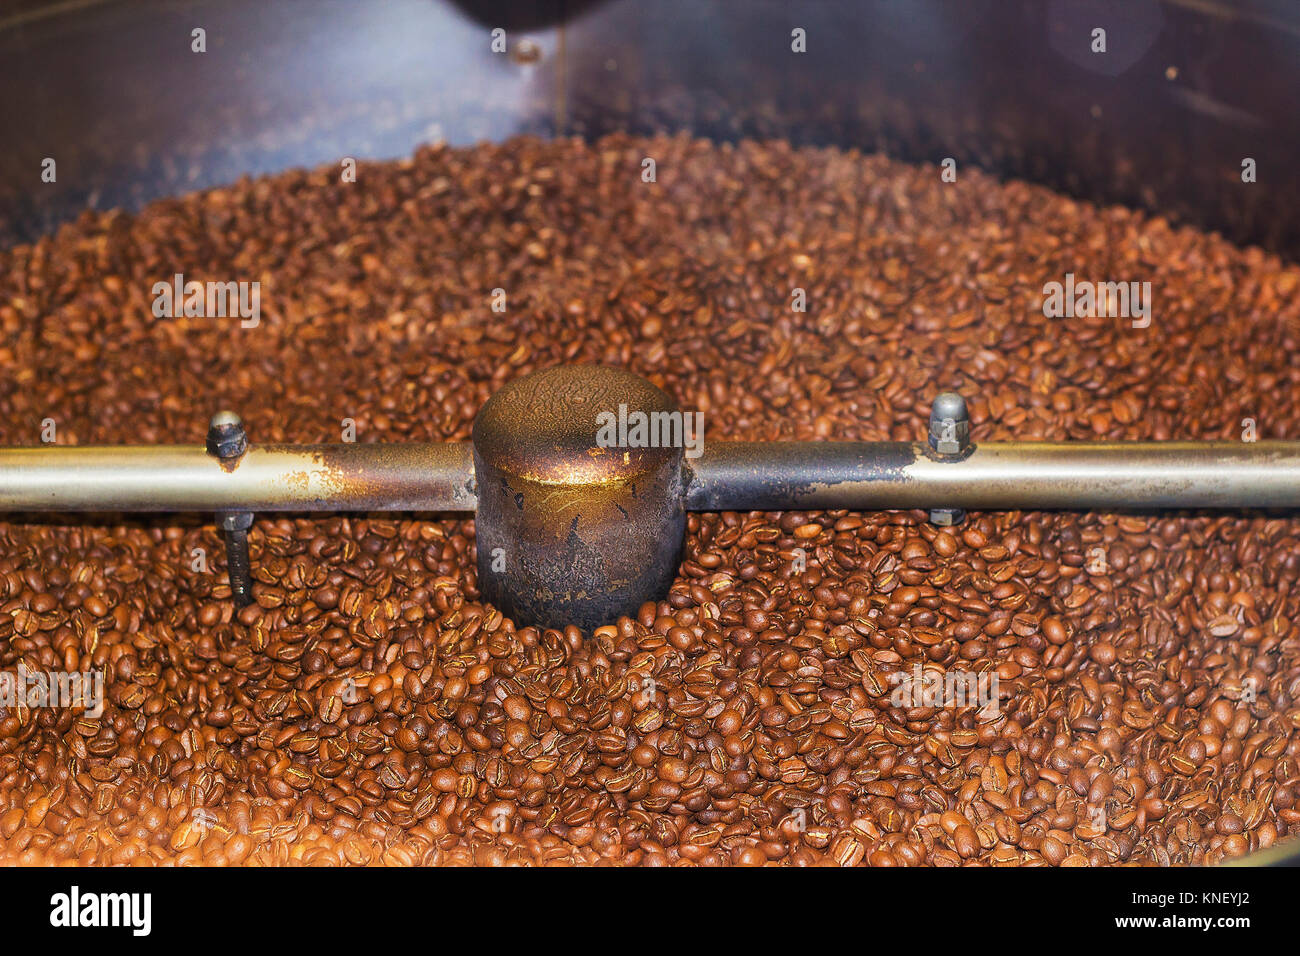 Large coffee mill large grinds coffee beans - Stock Image